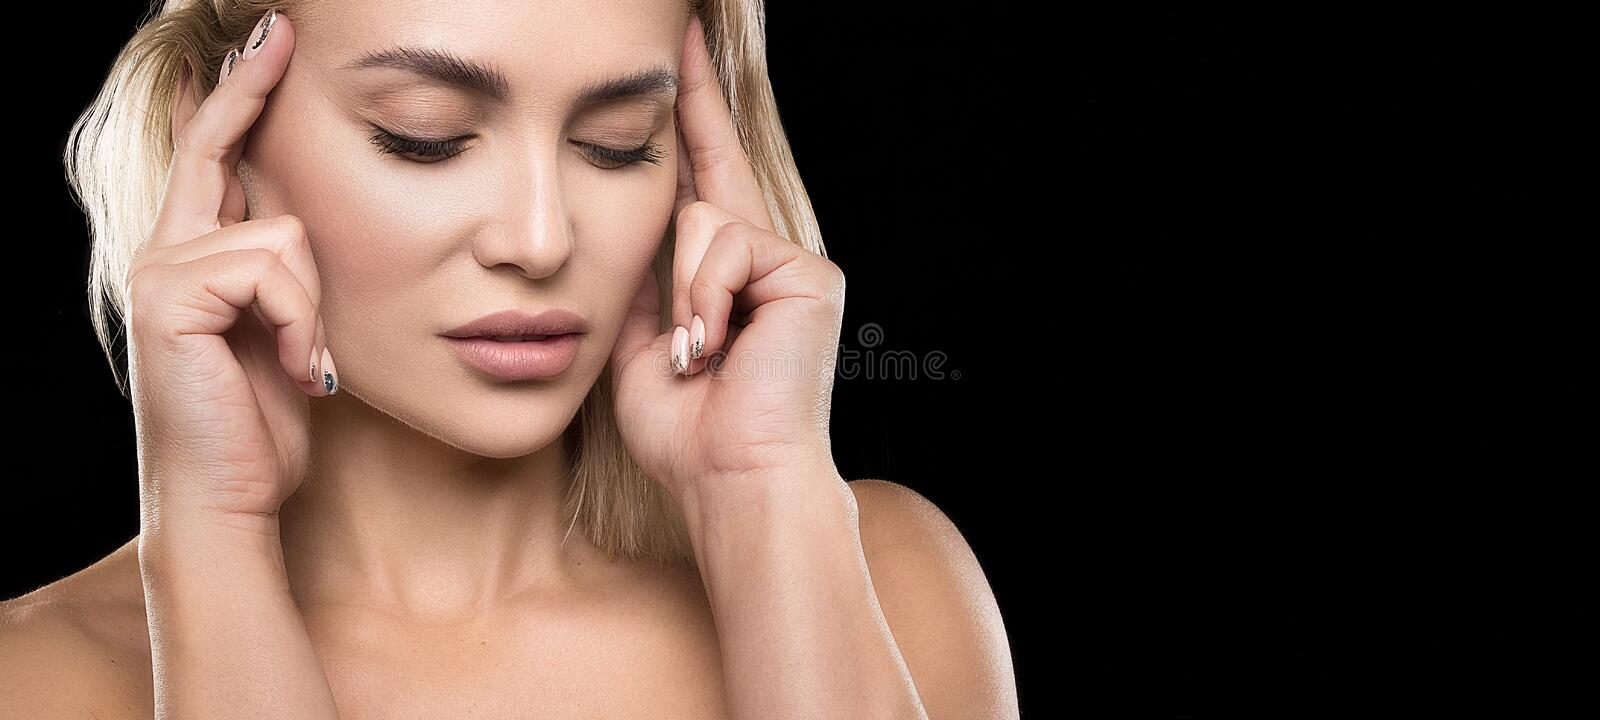 Blonde hair woman with beauty face skin over dark background female portrait stock photo